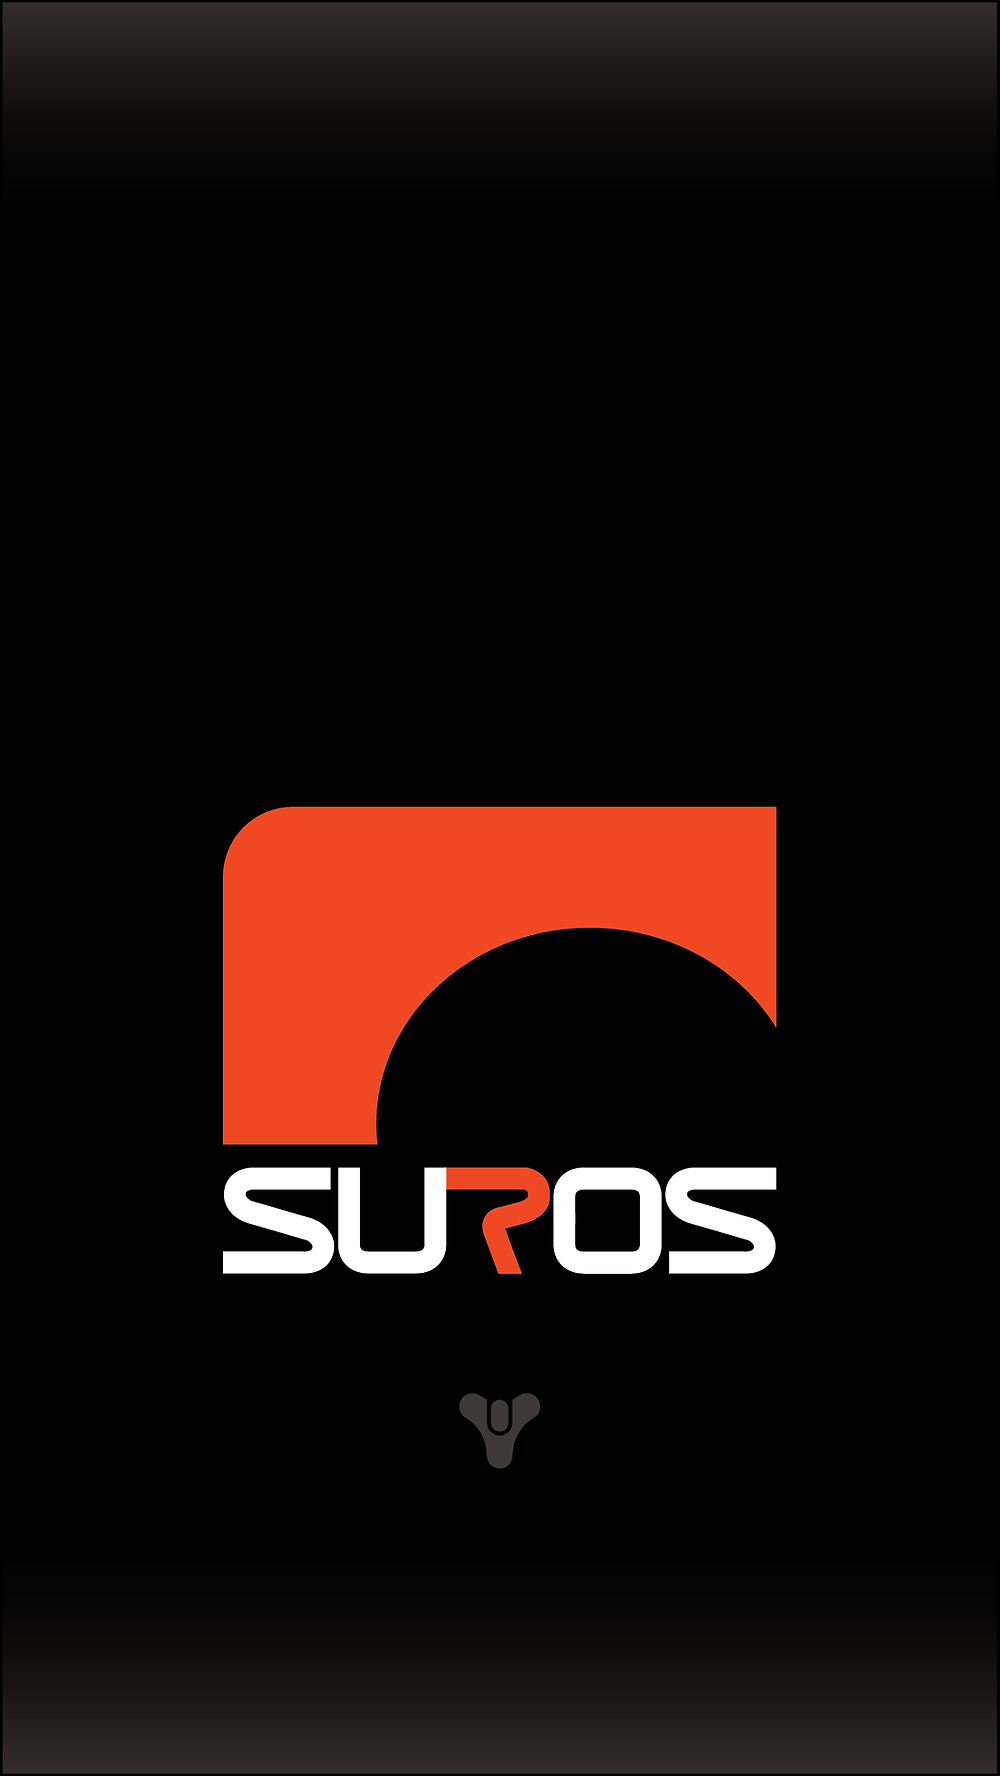 SUROS - 1080x1920.png